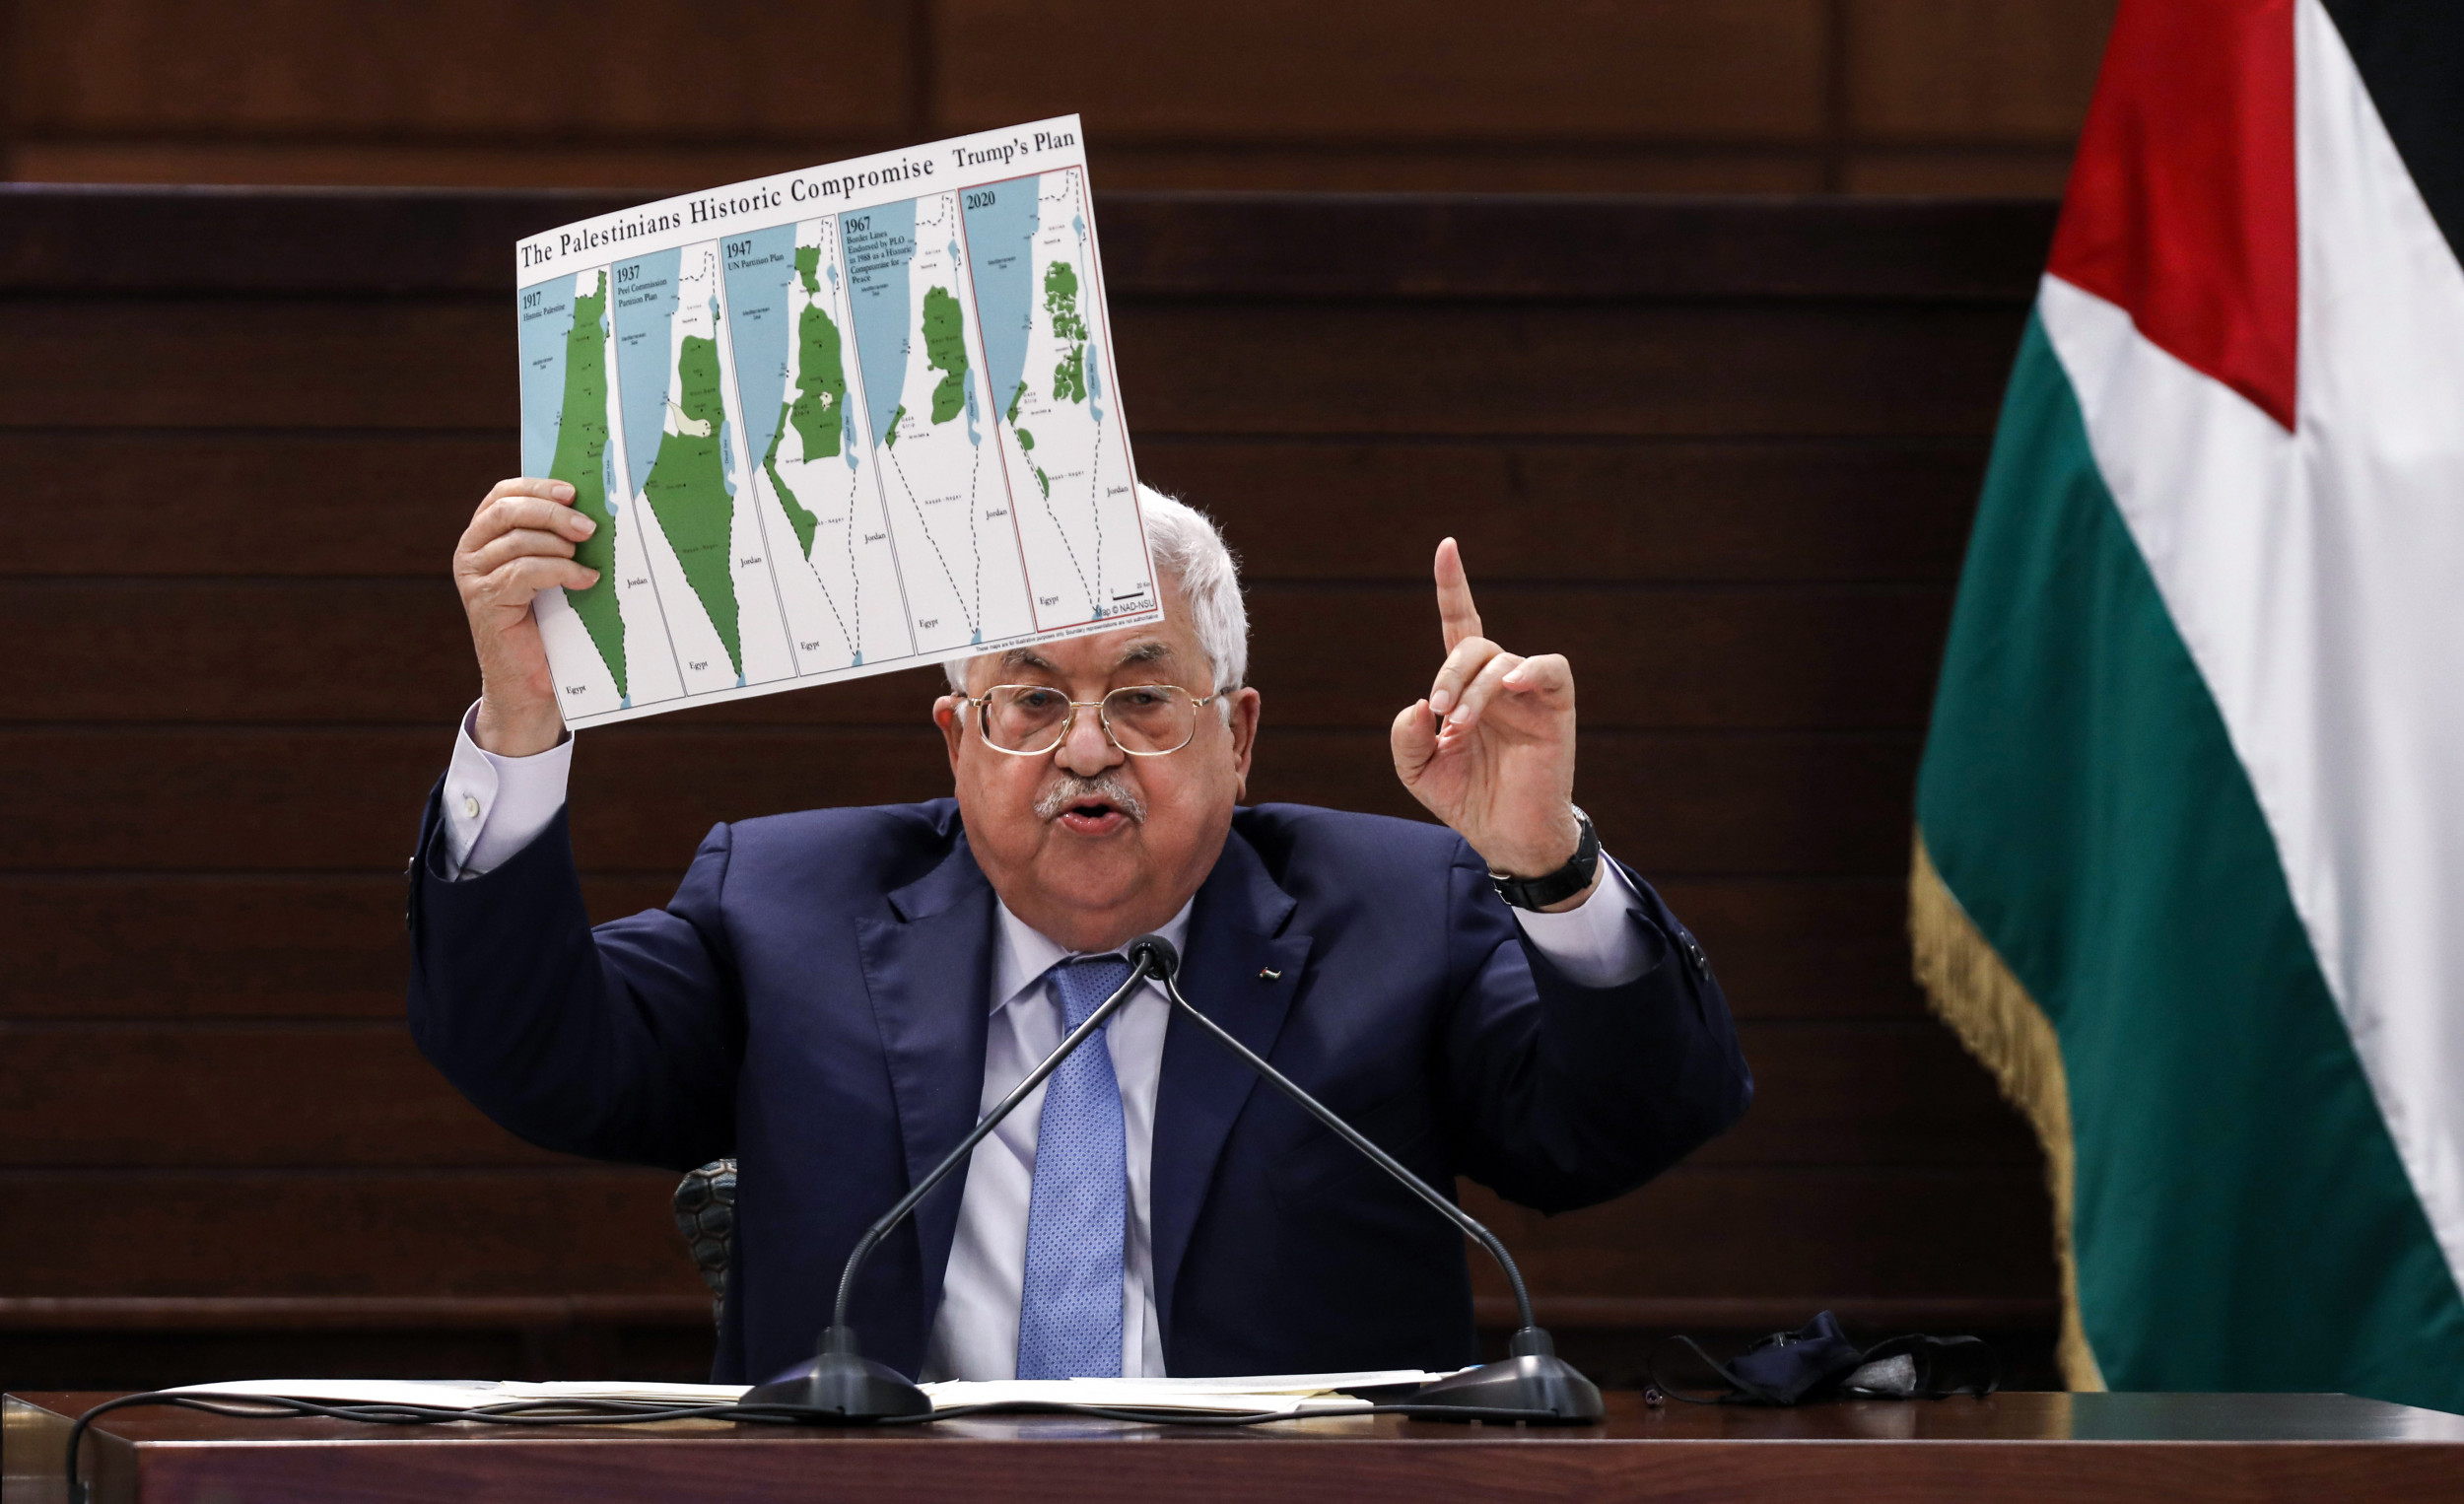 Palestinian elections are in sight, but prospects for reform remain slim | Opinion